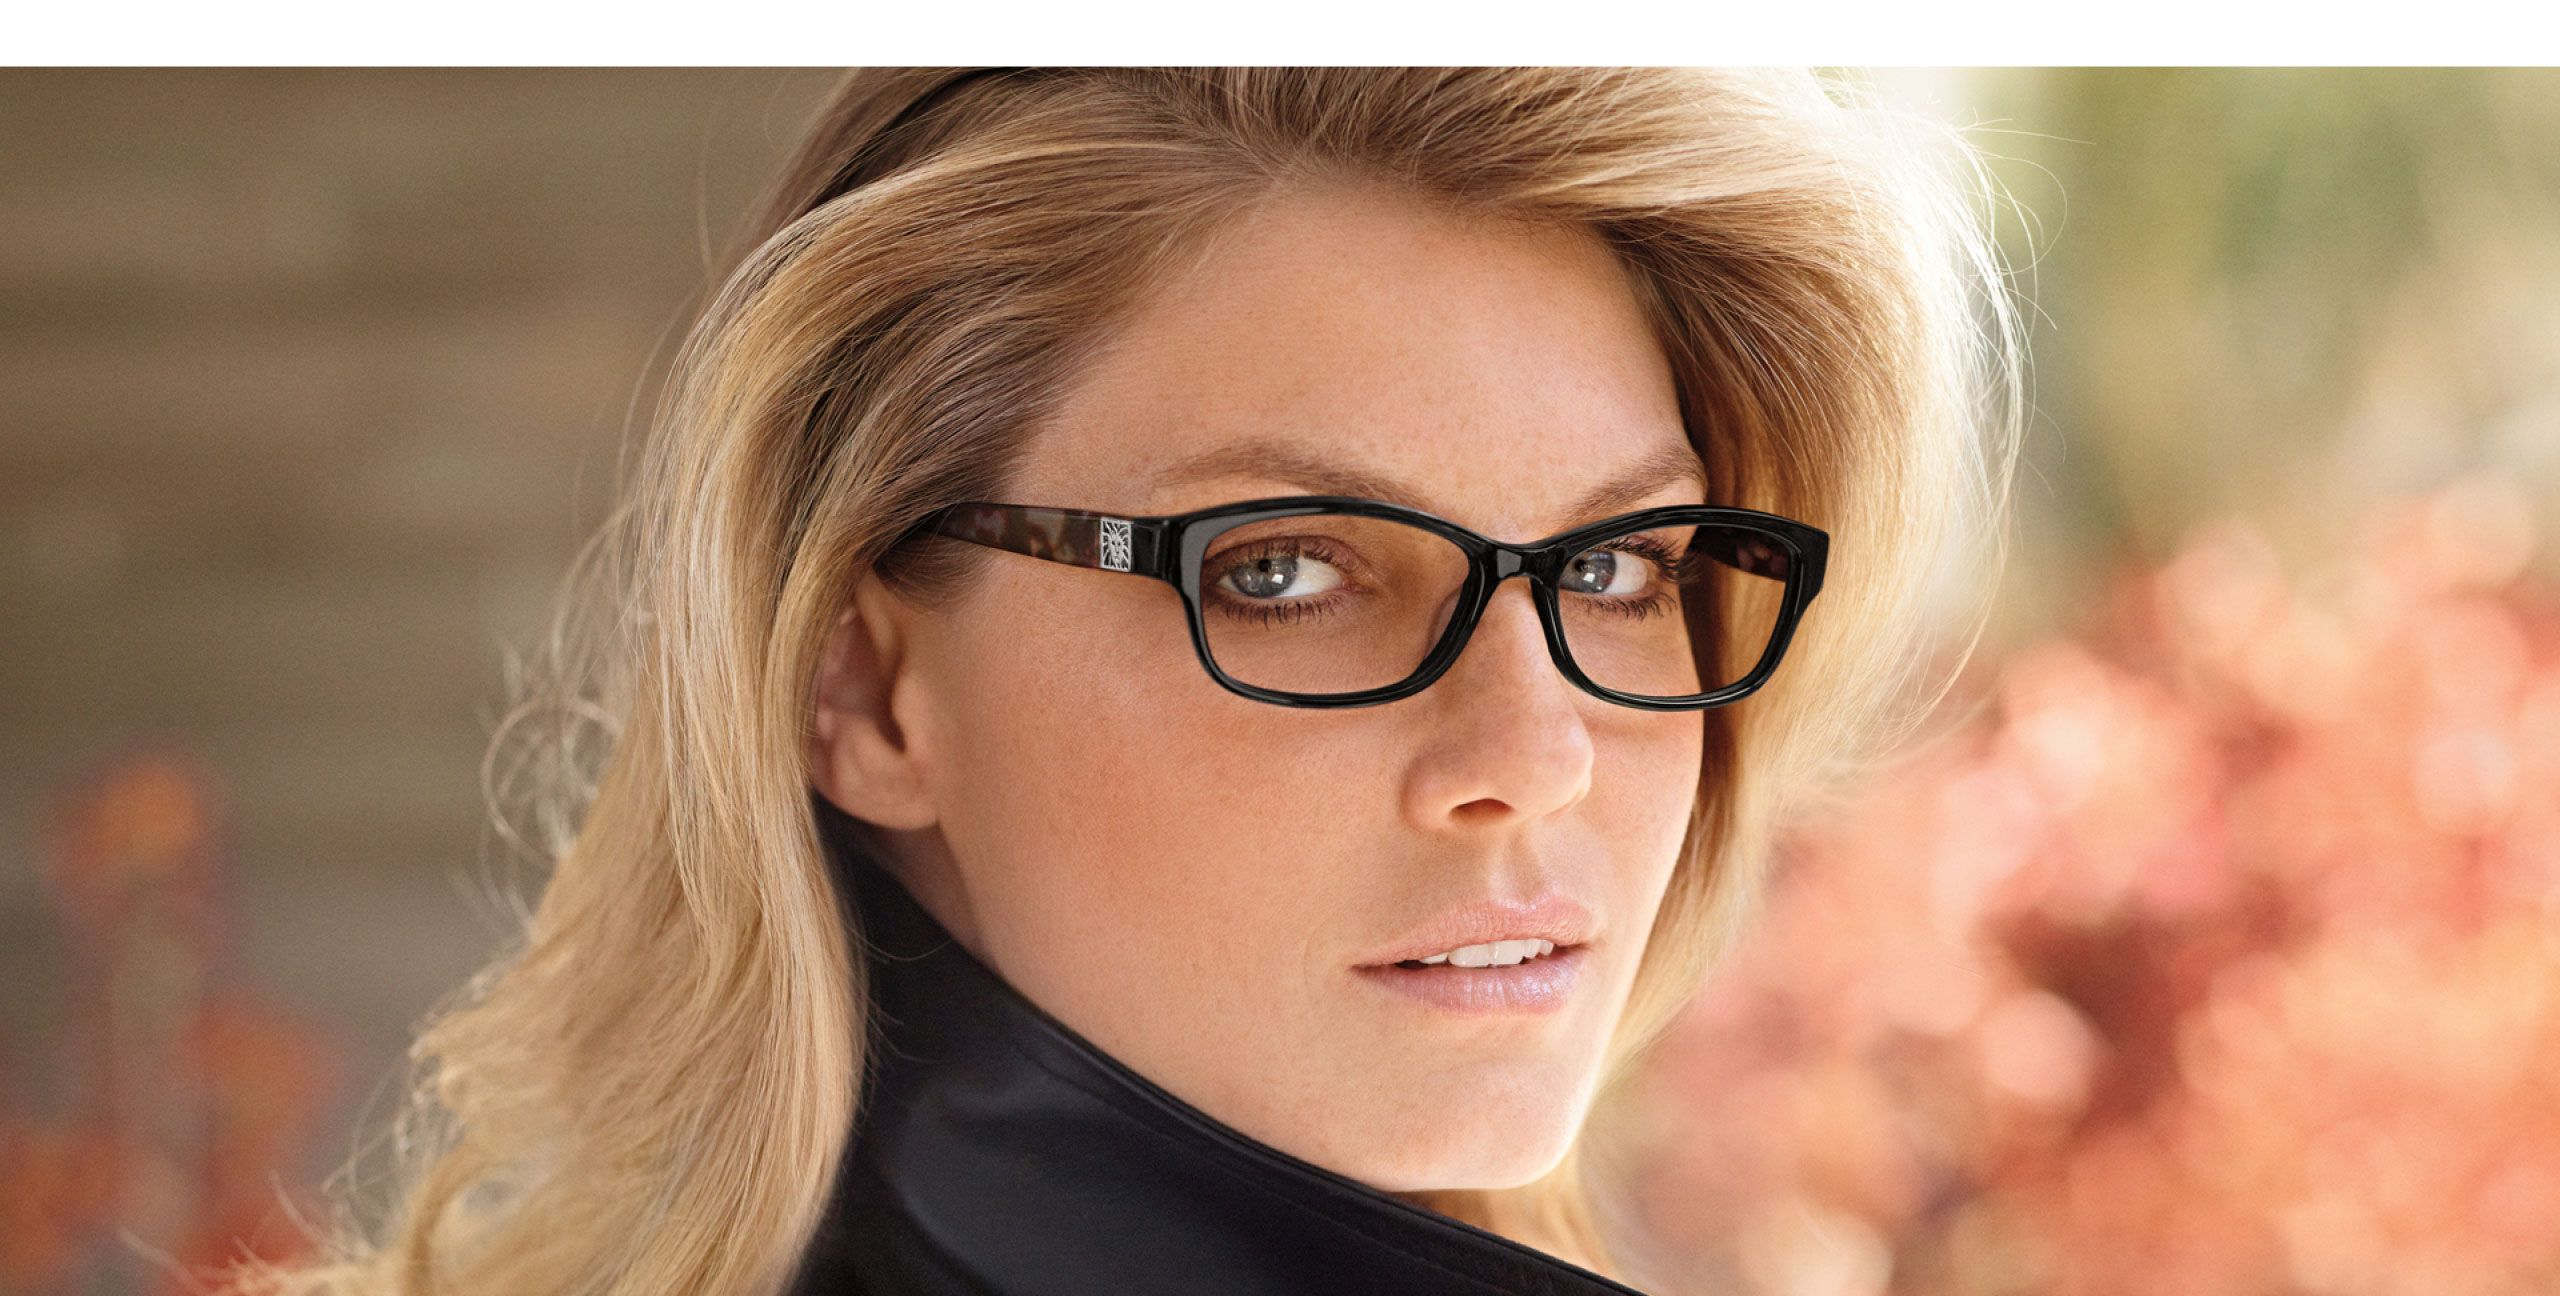 altair eyewear anne klein collection